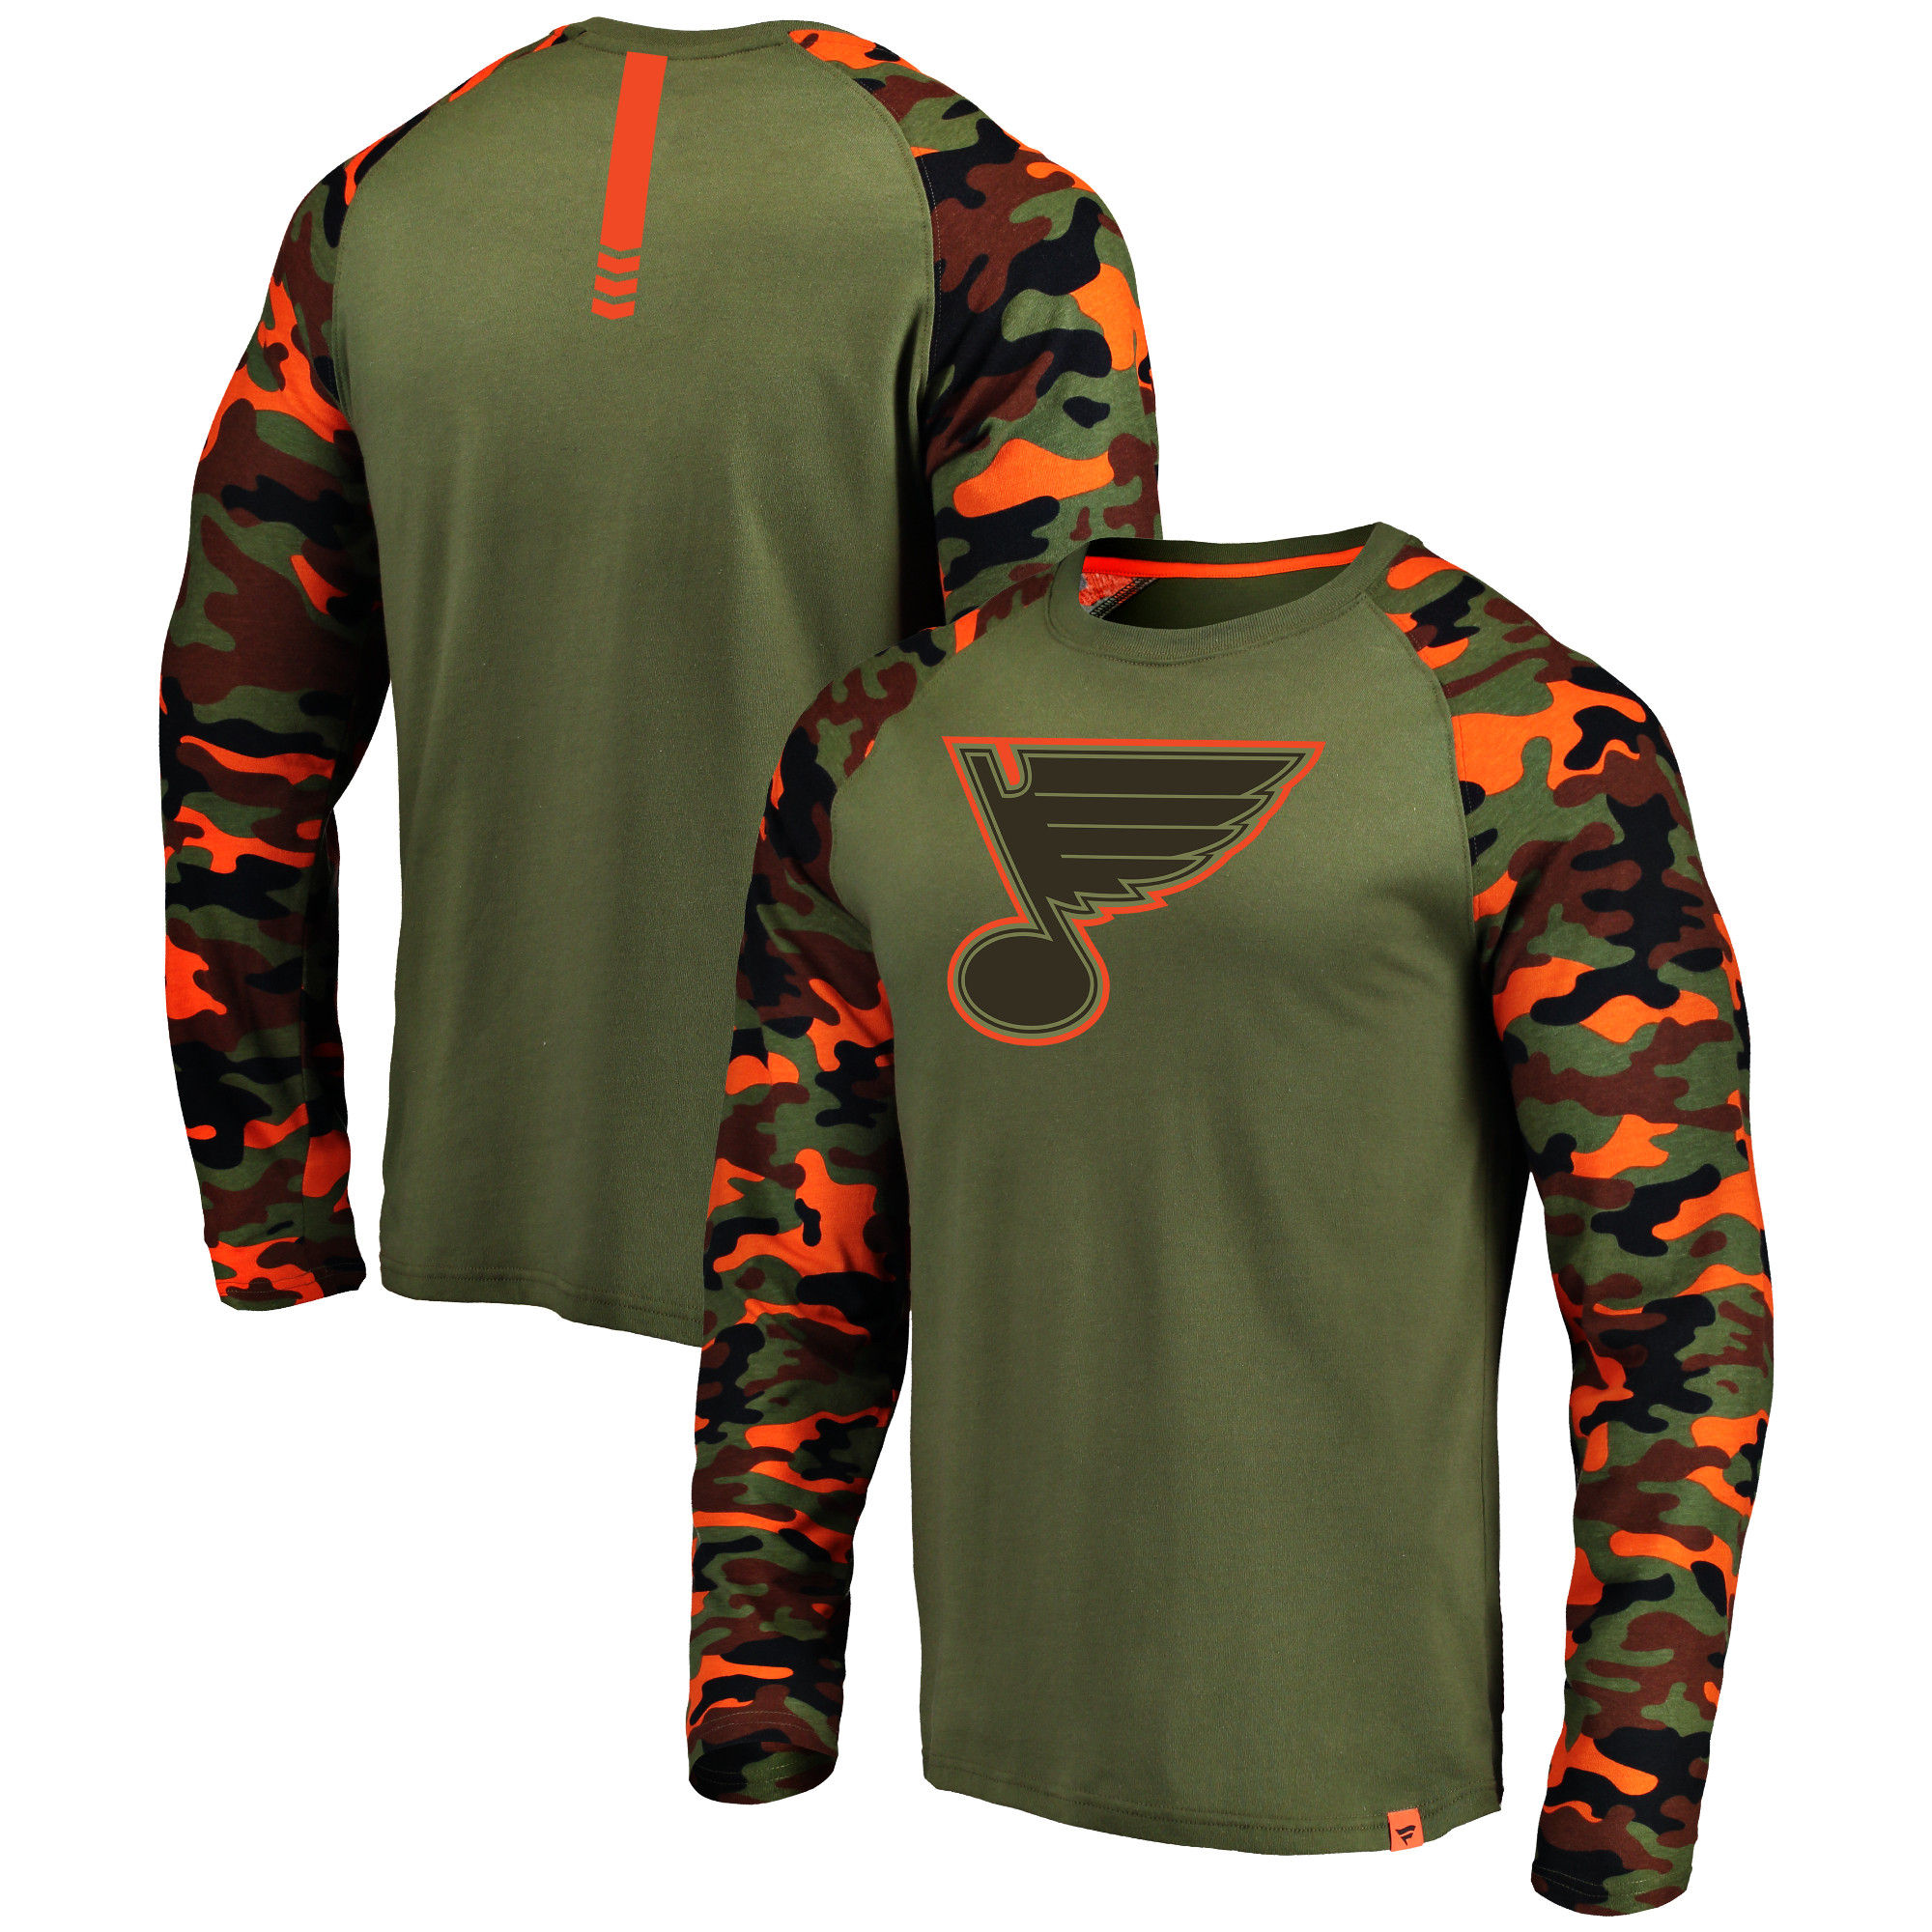 St. Louis Blues Fanatics Branded Olive/Camo Recon Long Sleeve Raglan T-Shirt